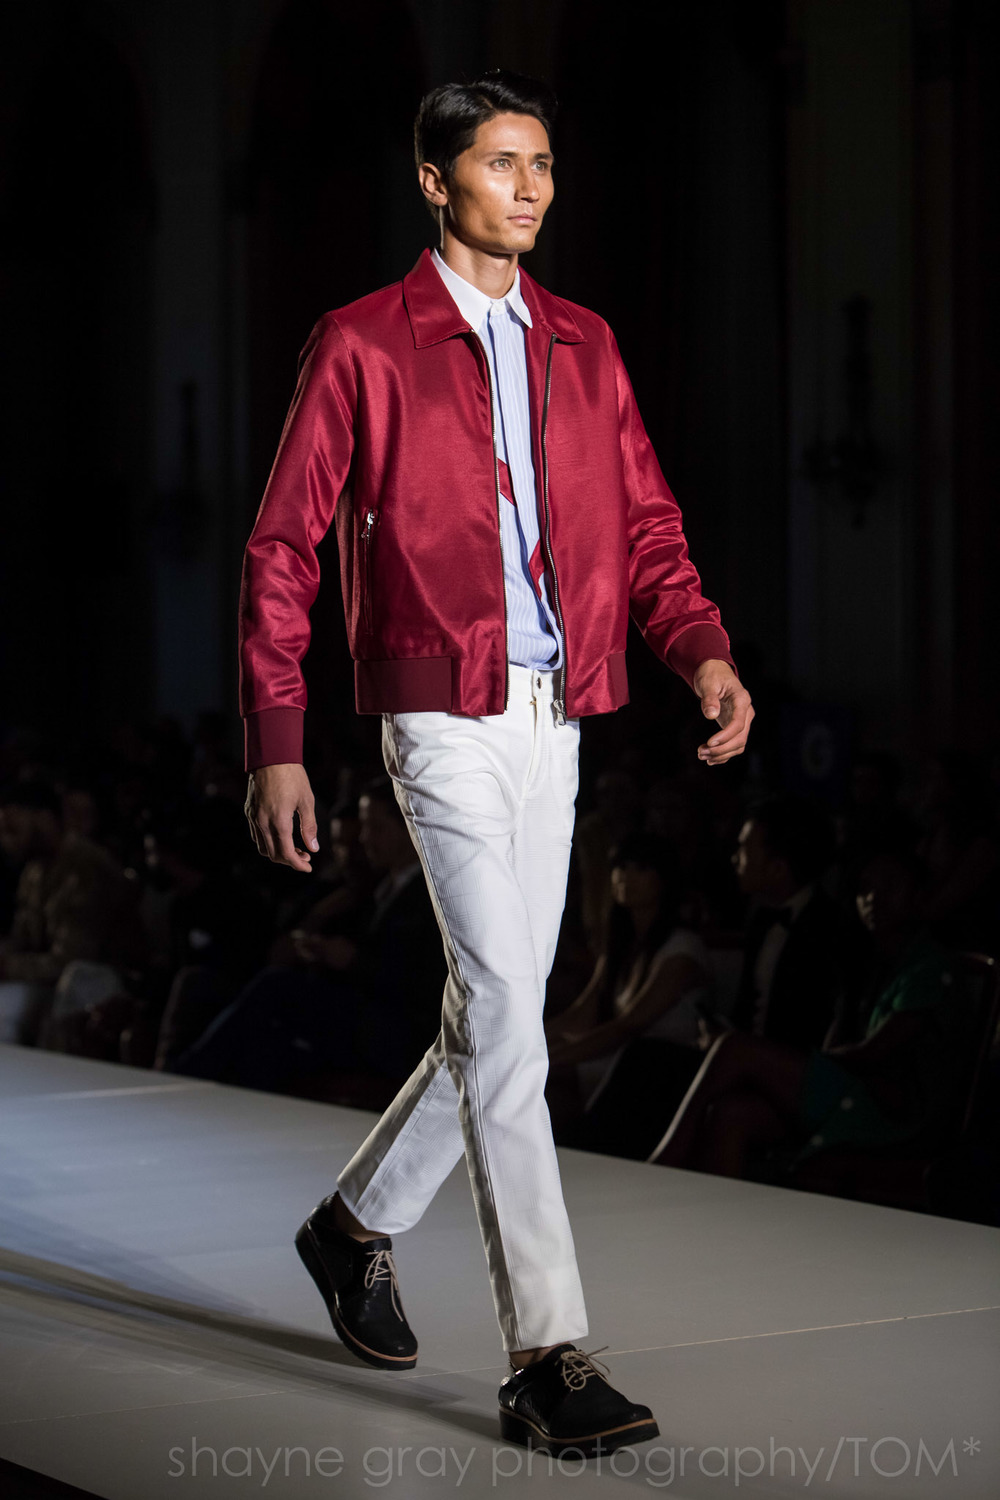 Shayne-Gray-Toronto-men's-fashion_week-TOM-noel-crisostomo-8477.jpg